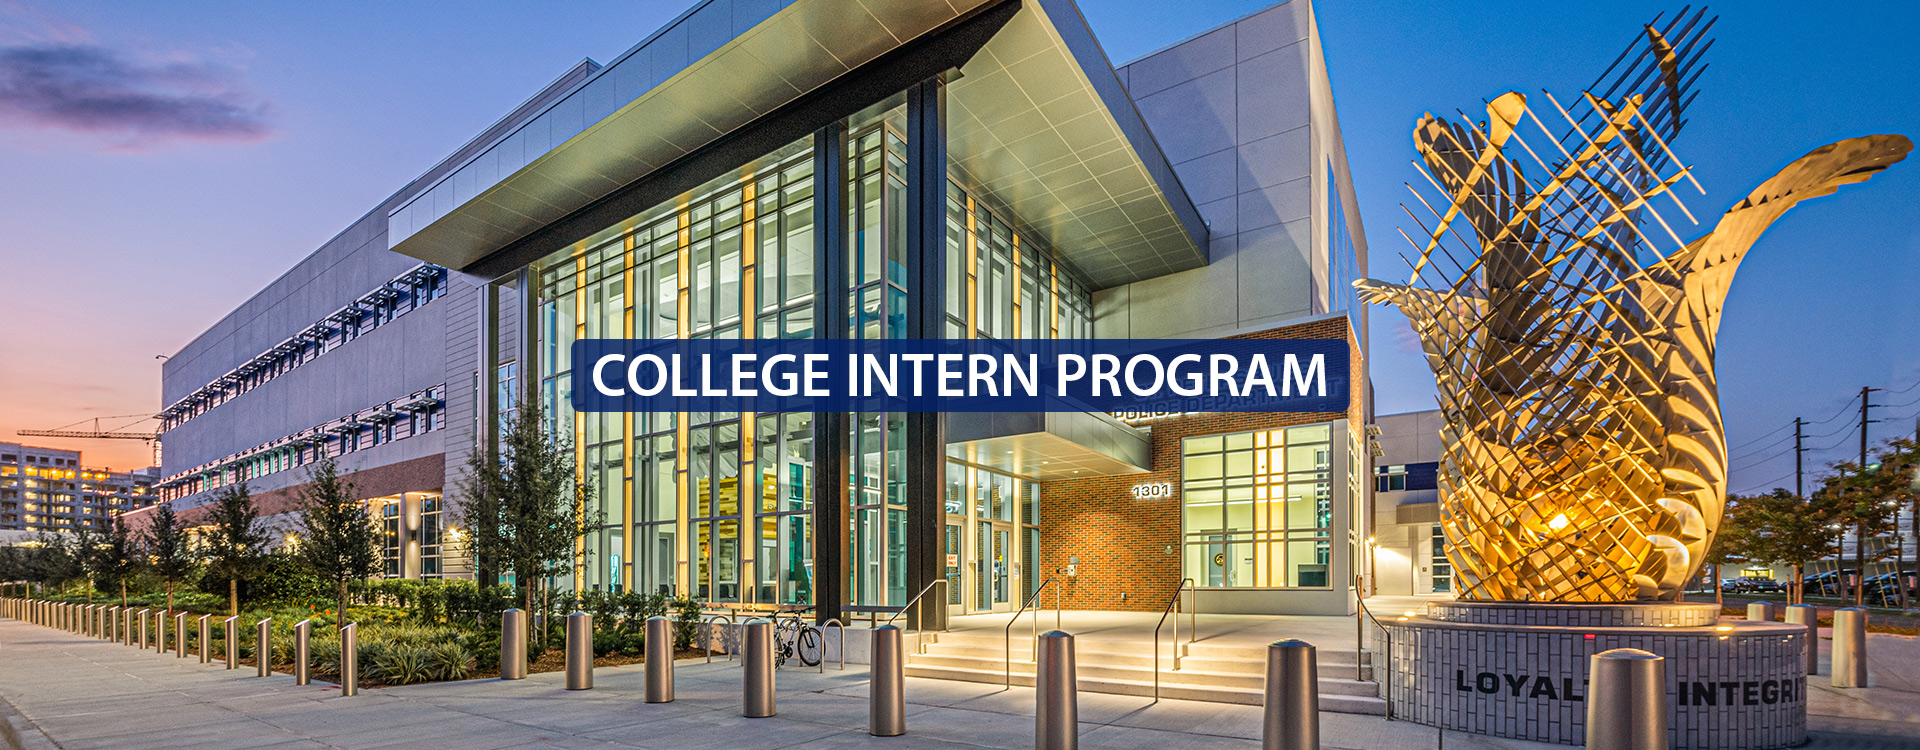 College Intern Program